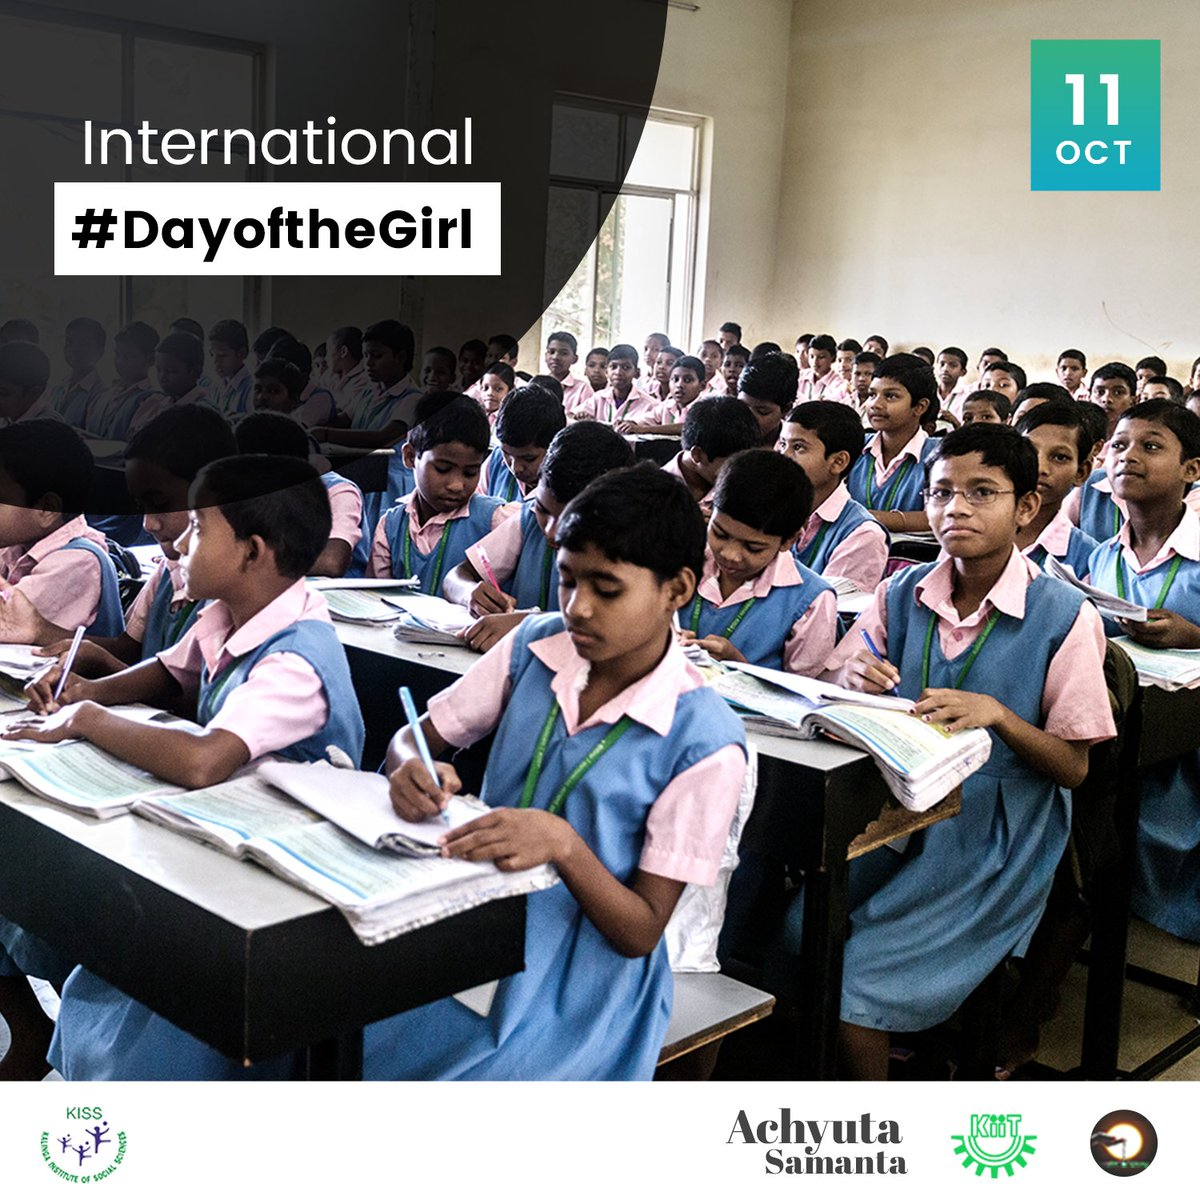 Happy International #DayOfTheGirl Today, we wish for every girl in the world, the right to inclusive, quality education because Education Empowers like nothing else. Investing in girls education empowers them to build better lives for themselves, their families, and the world.